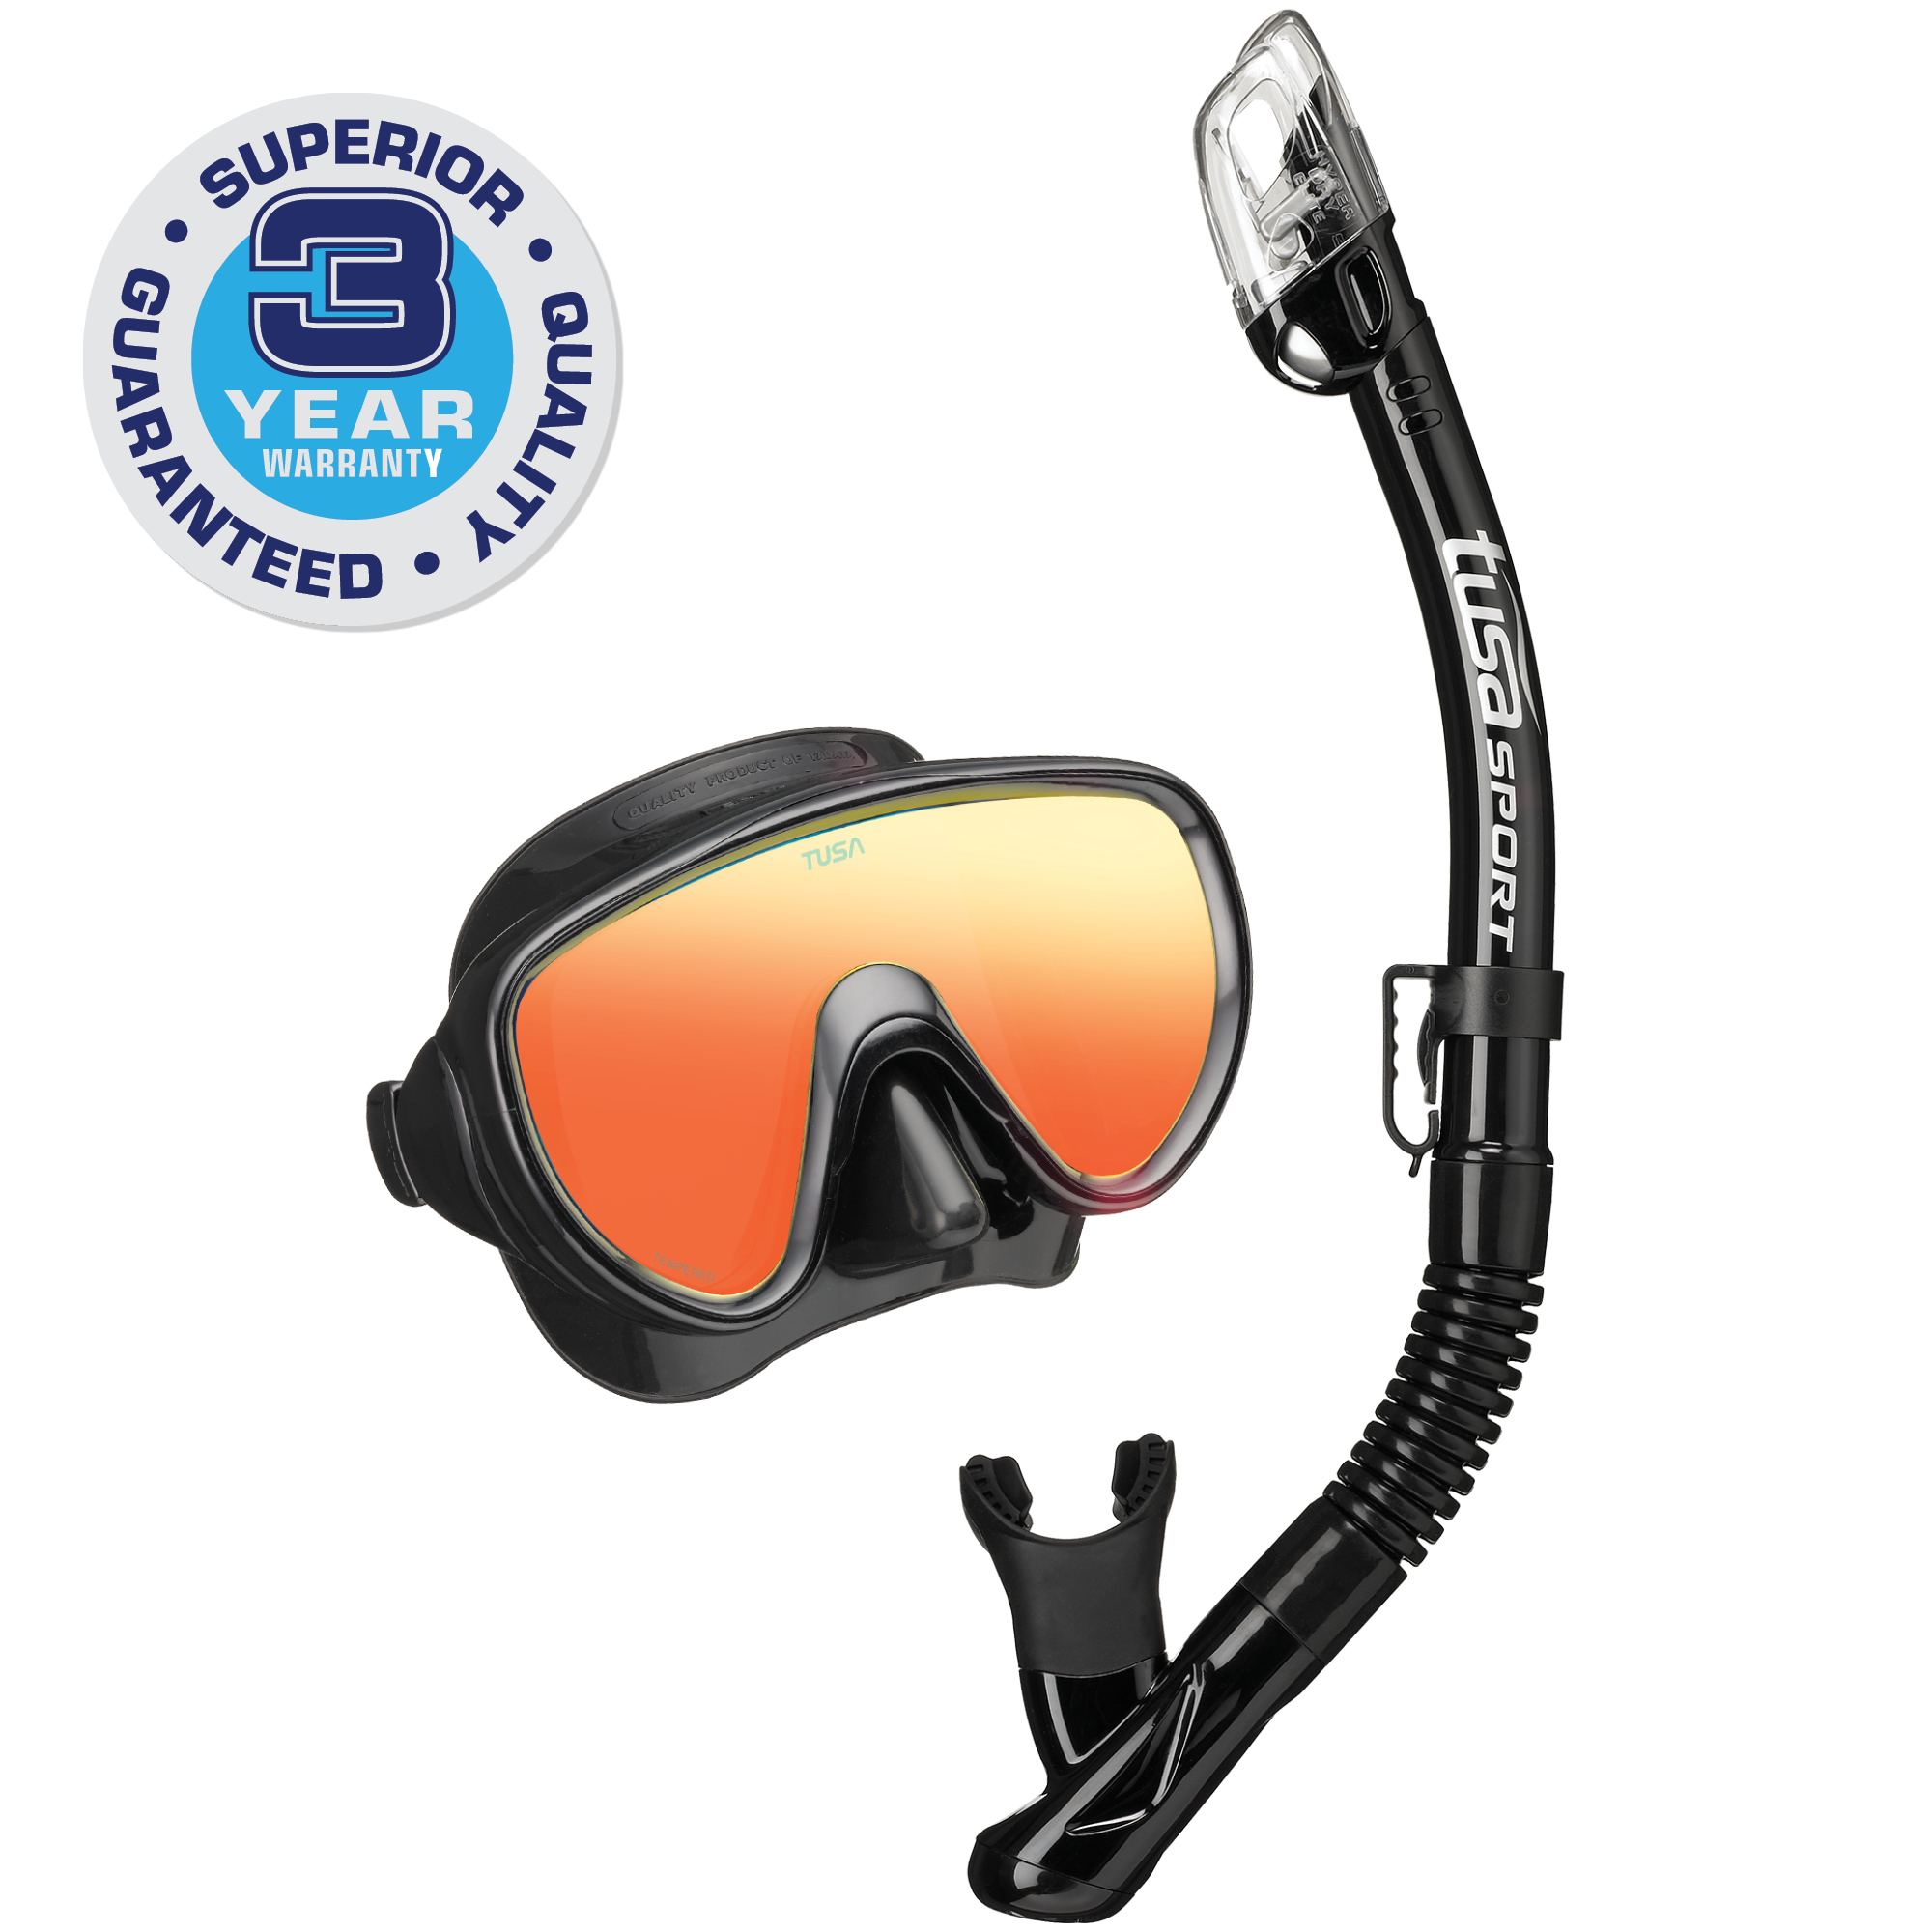 TUSA Sport Adult Serene Black Series Mirrored Mask and Dry Snorkel Combo